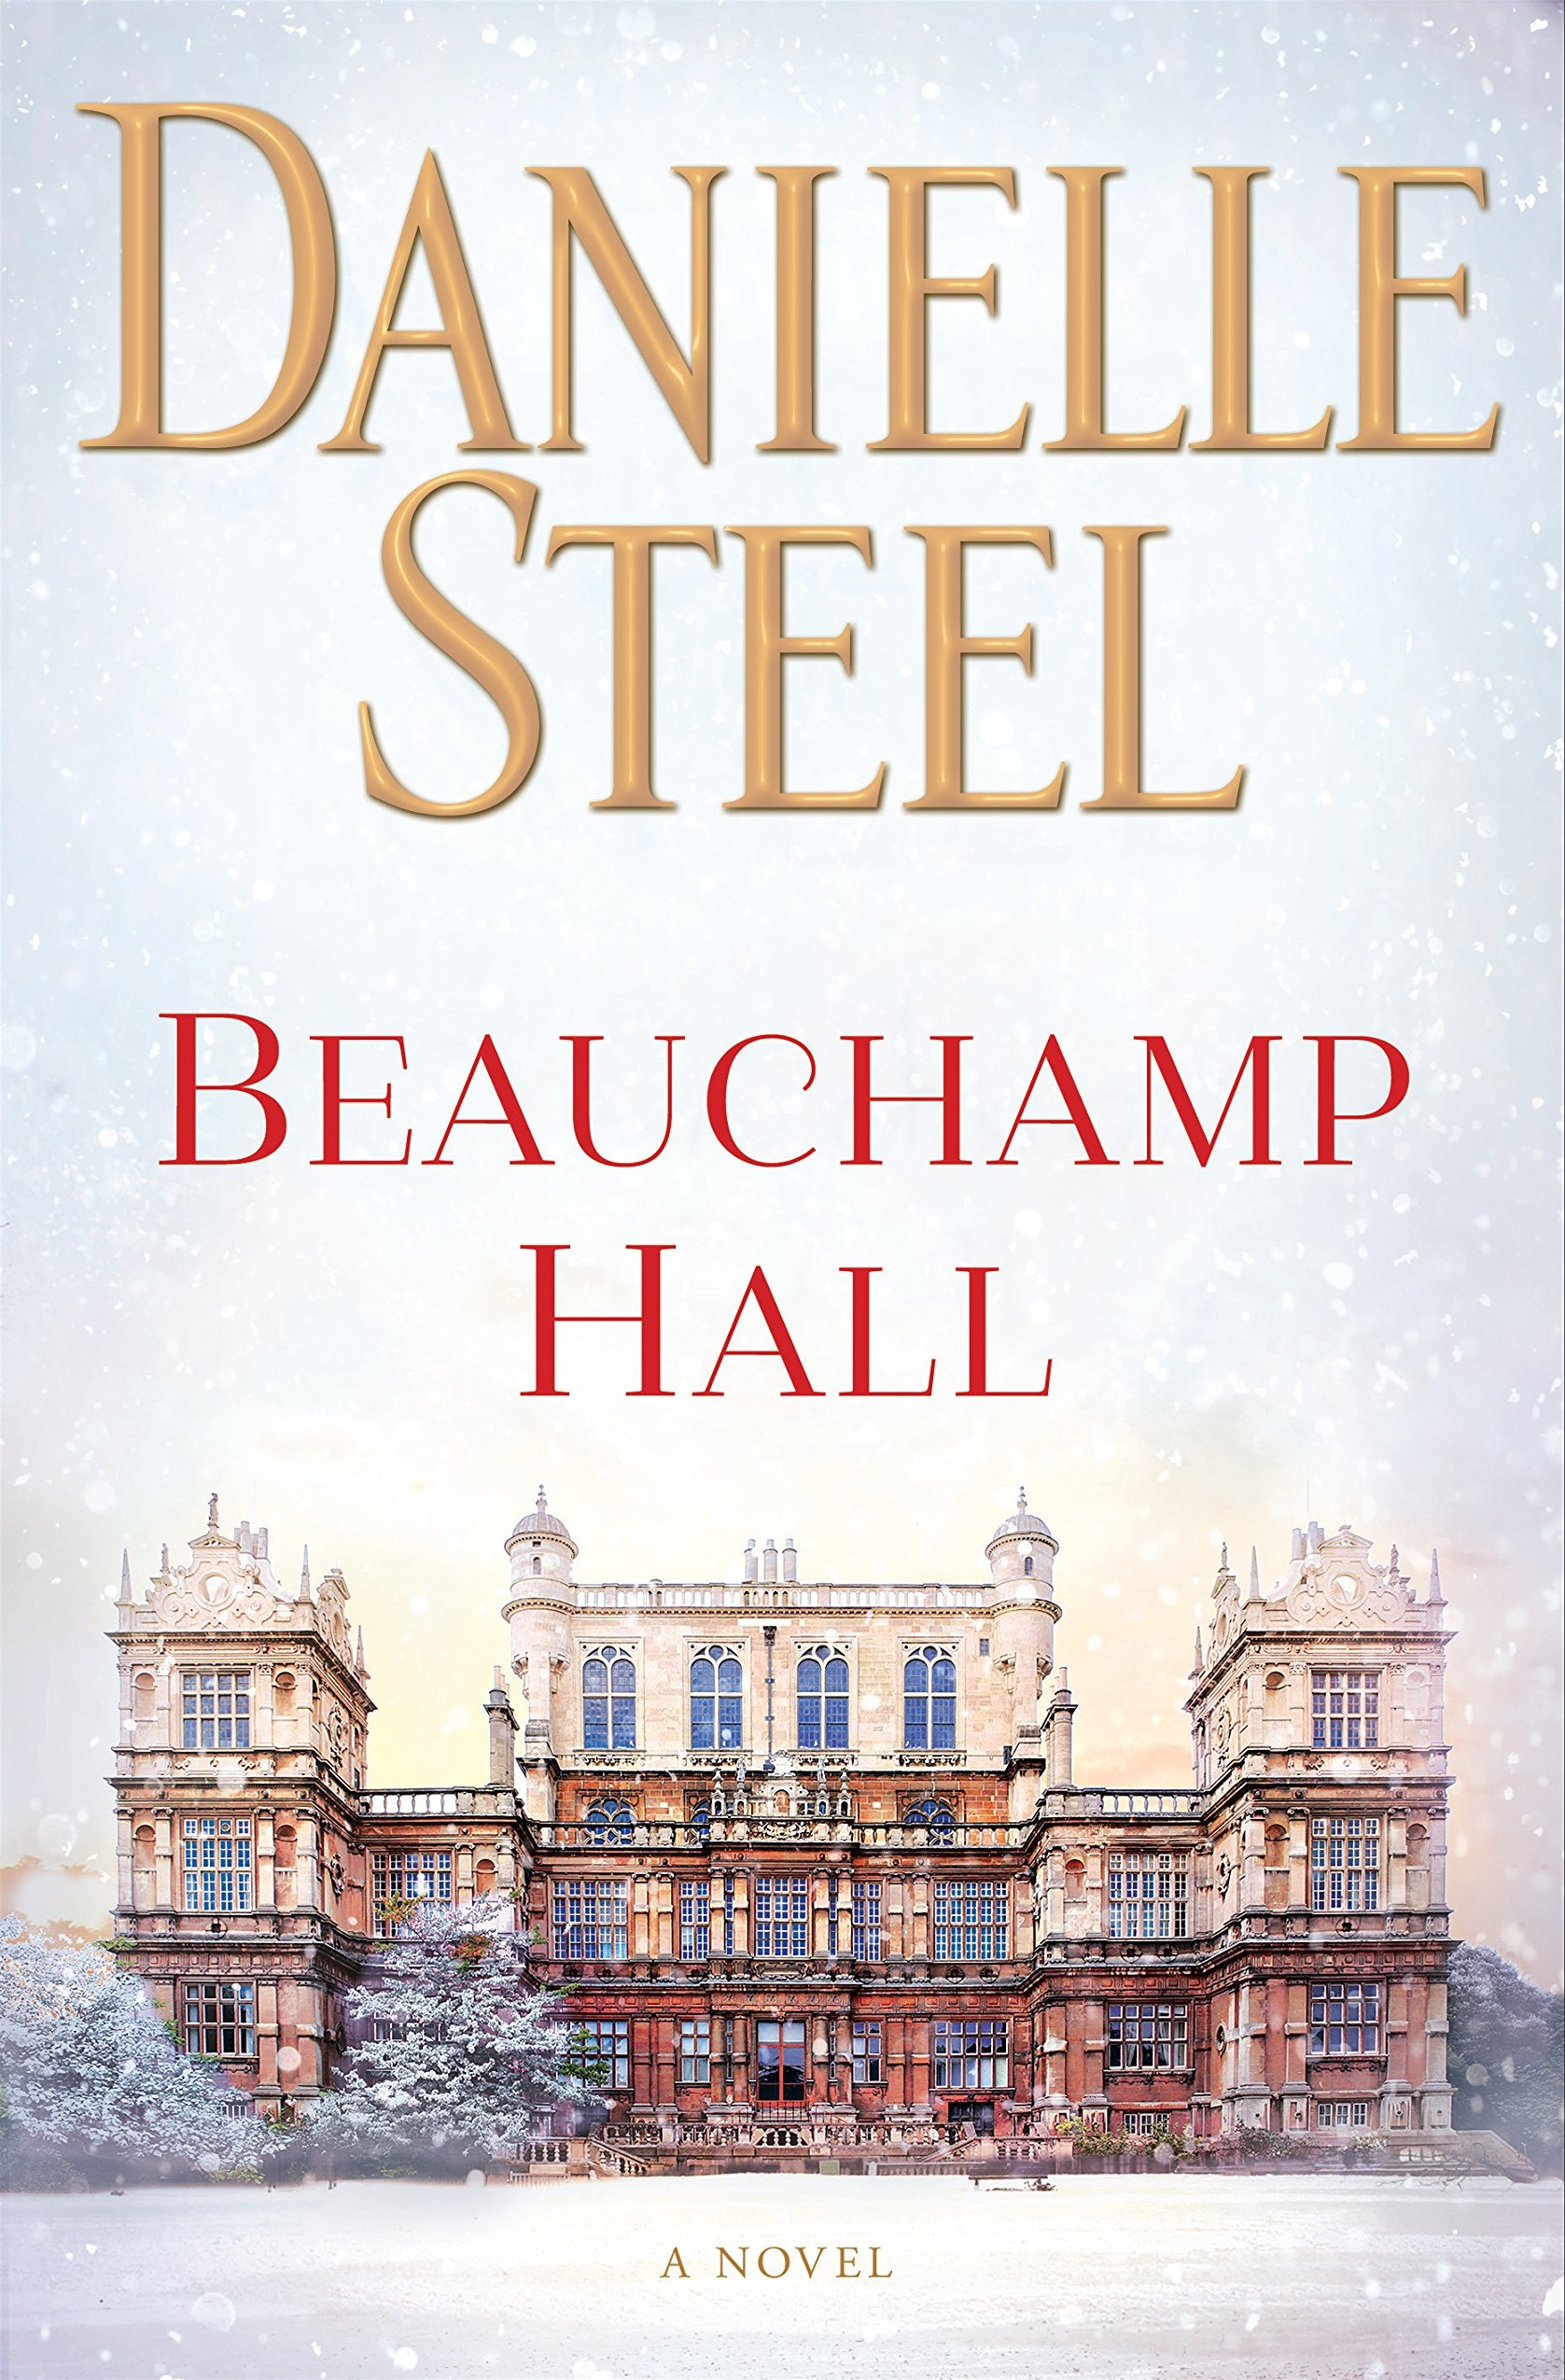 Danielle Steel Books, cover of Beauchamp Hall by Danielle Steel, books